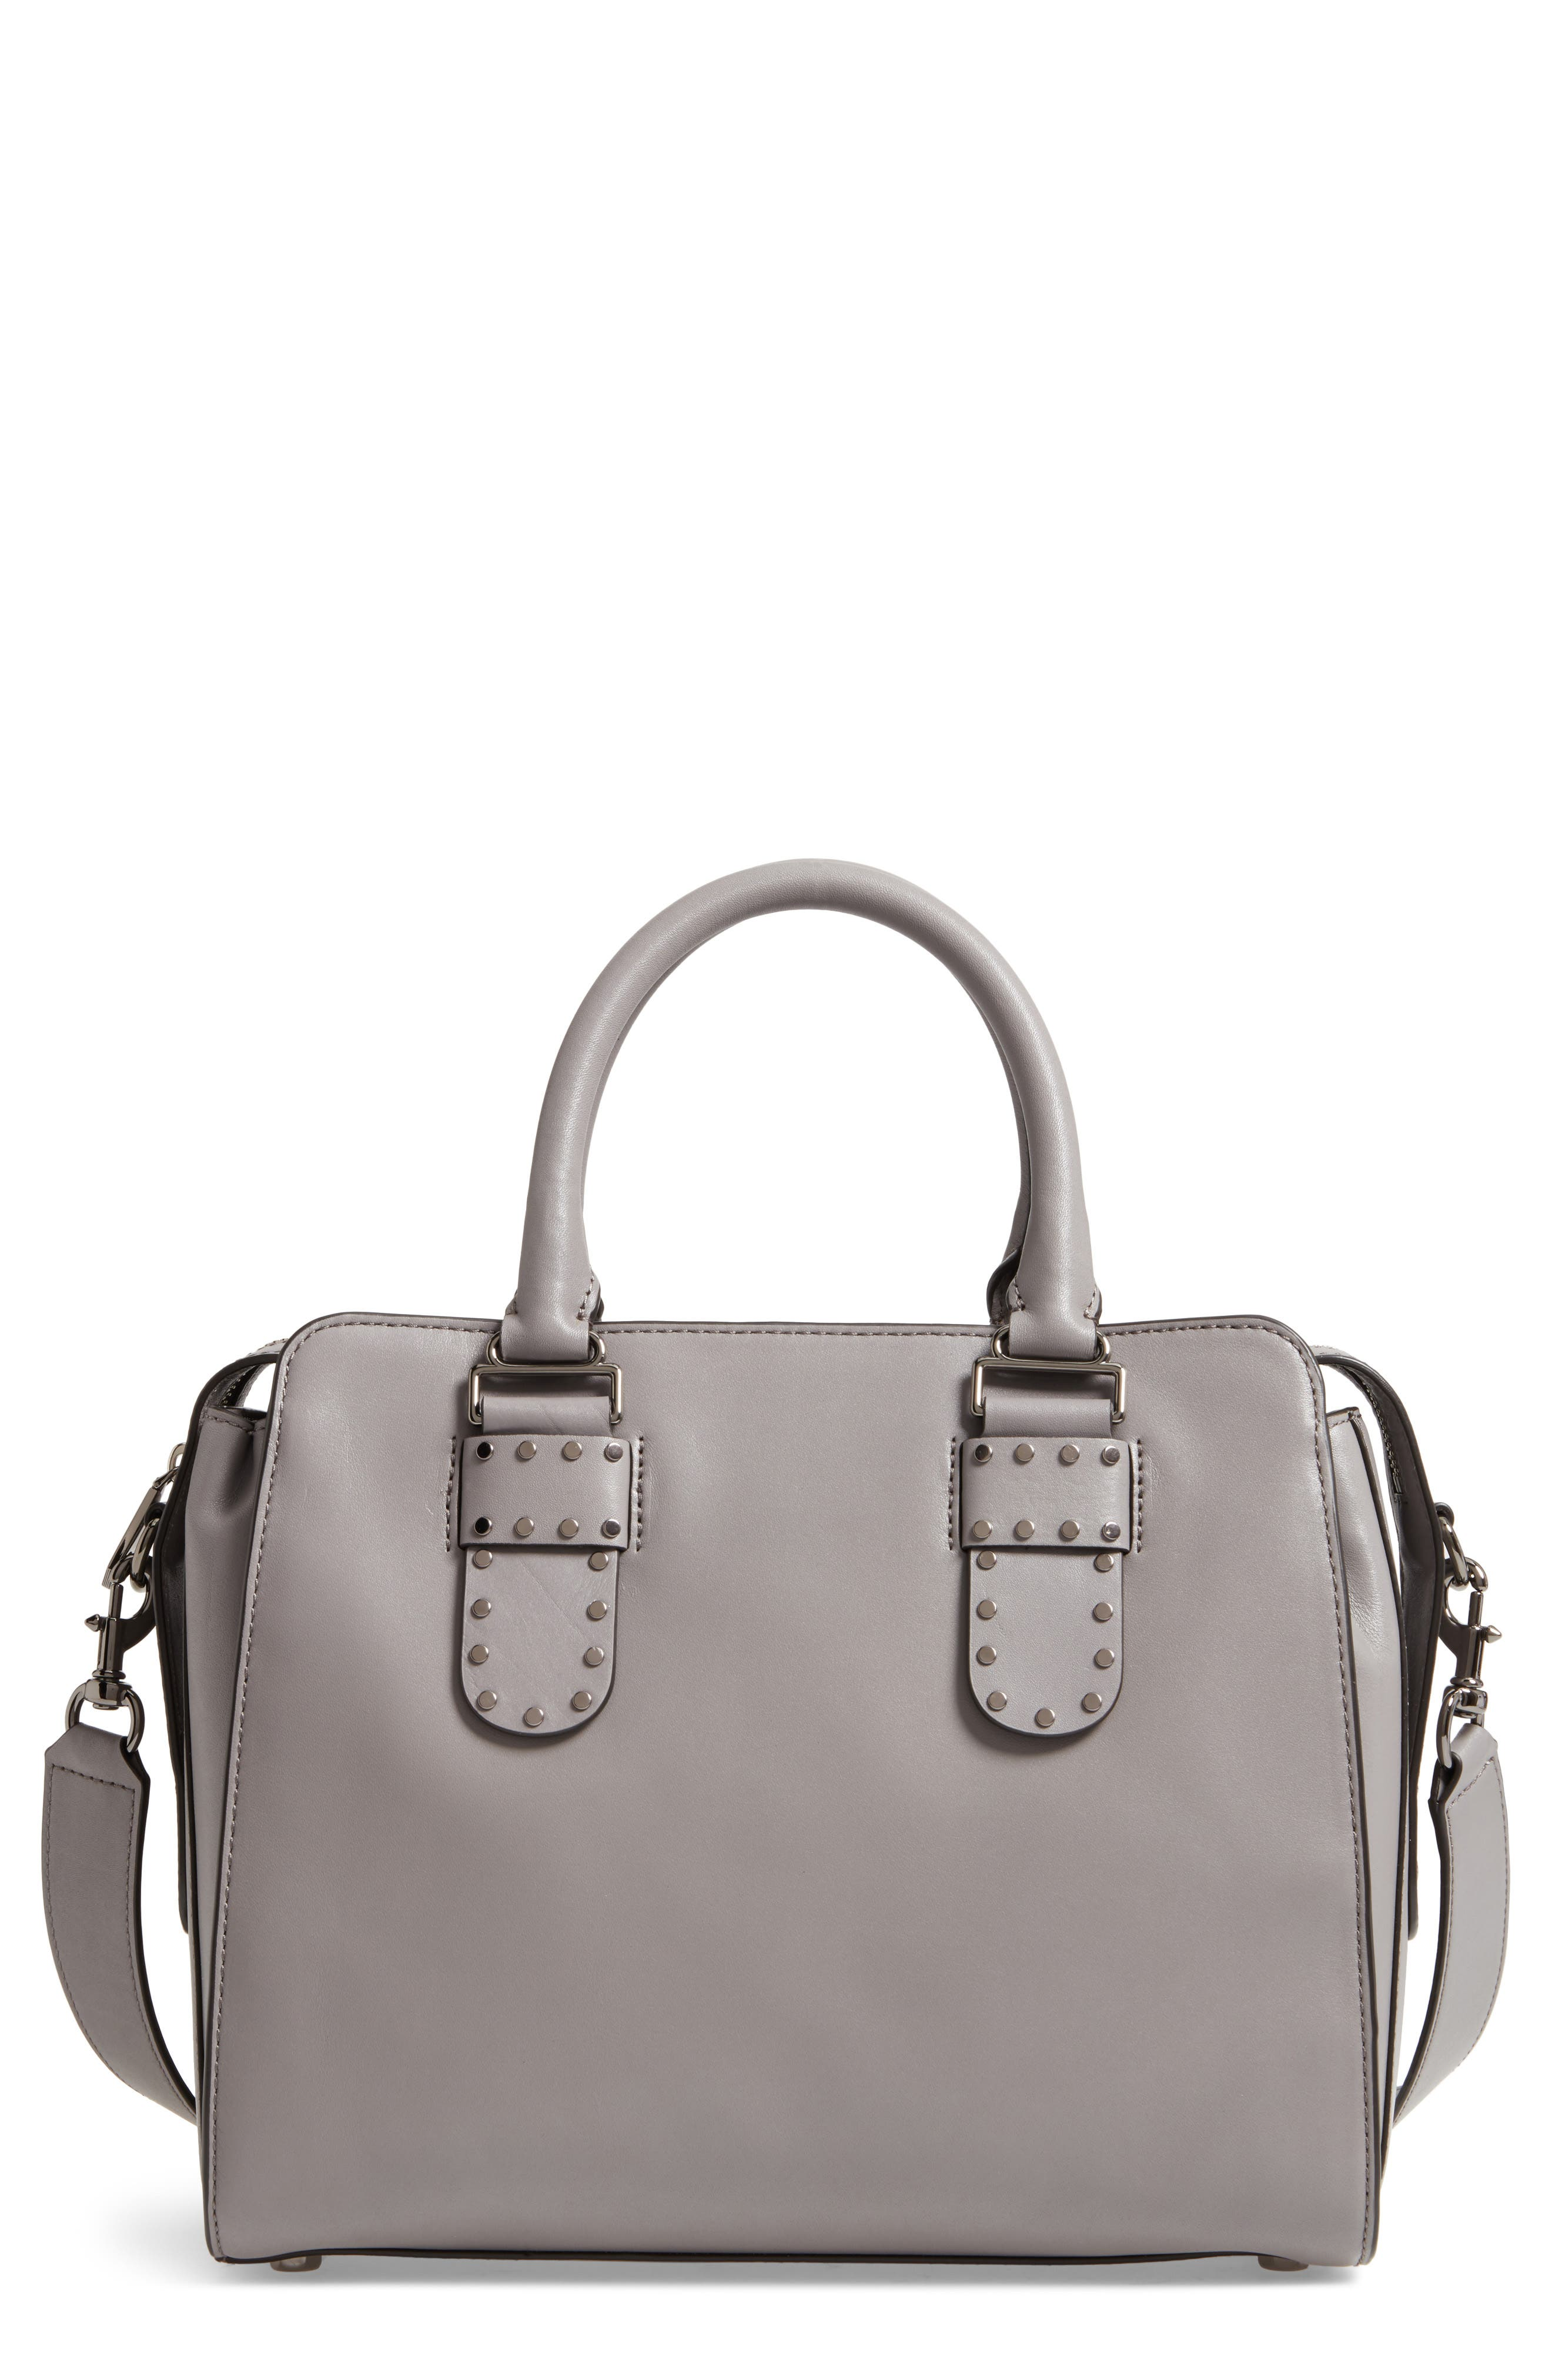 Rebecca Minkoff Midnighter Work Satchel